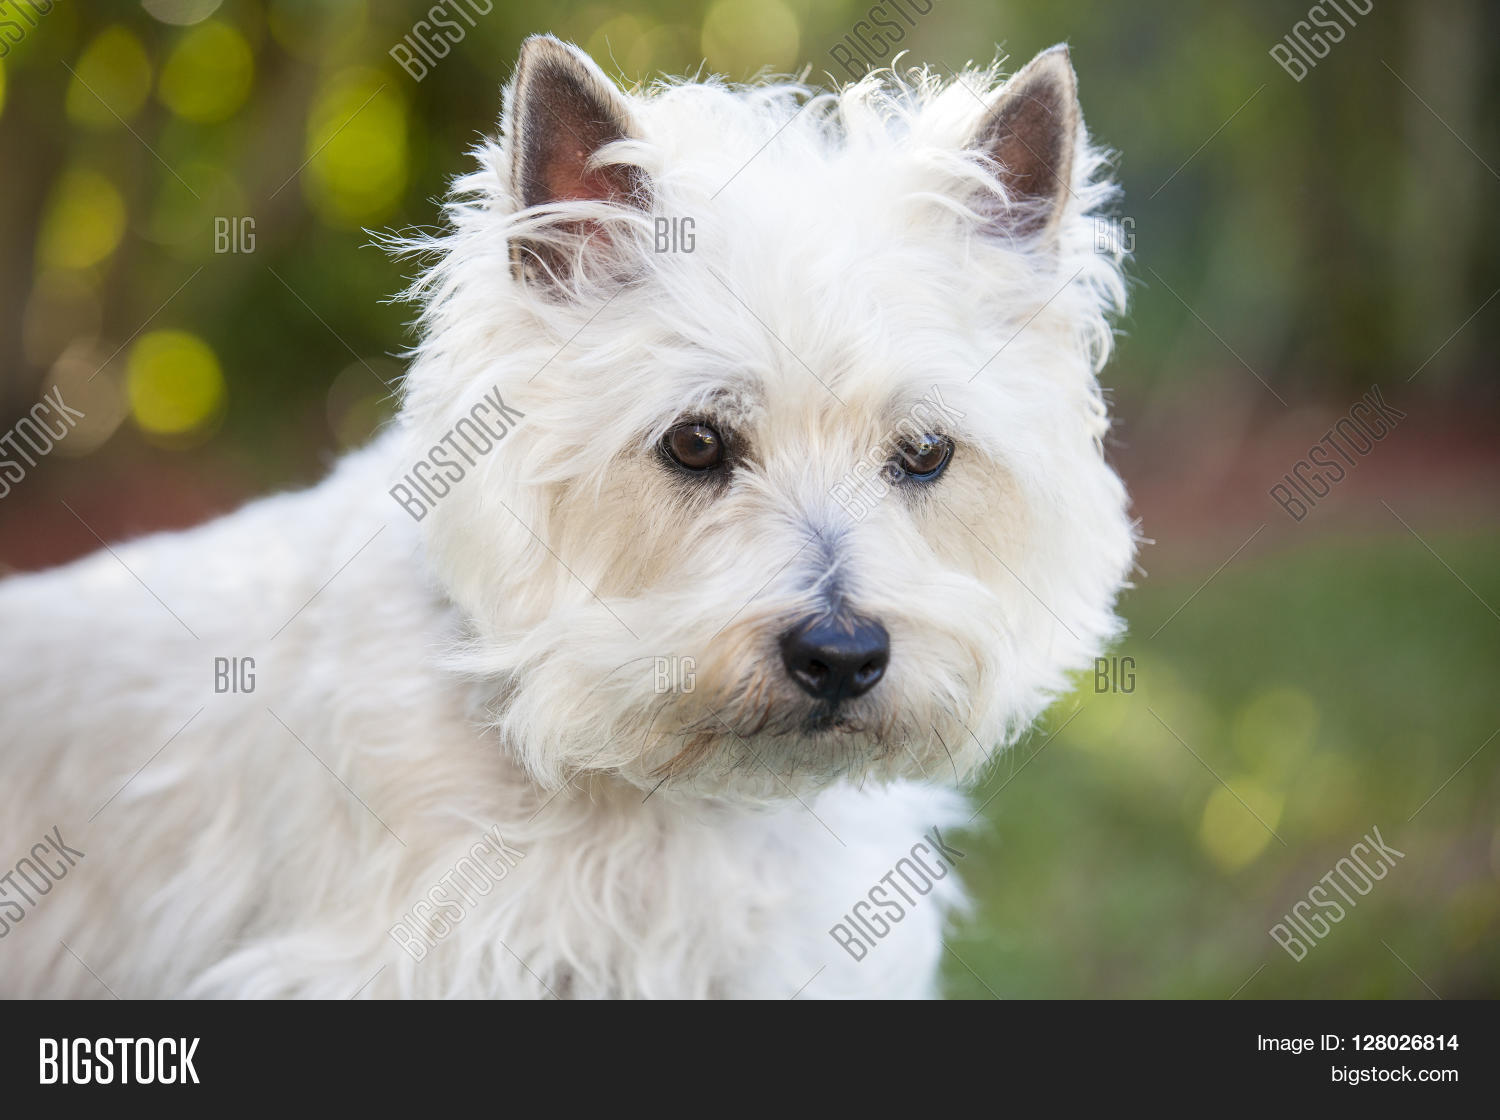 White Cairn Terrier Image & Photo (Free Trial) | Bigstock